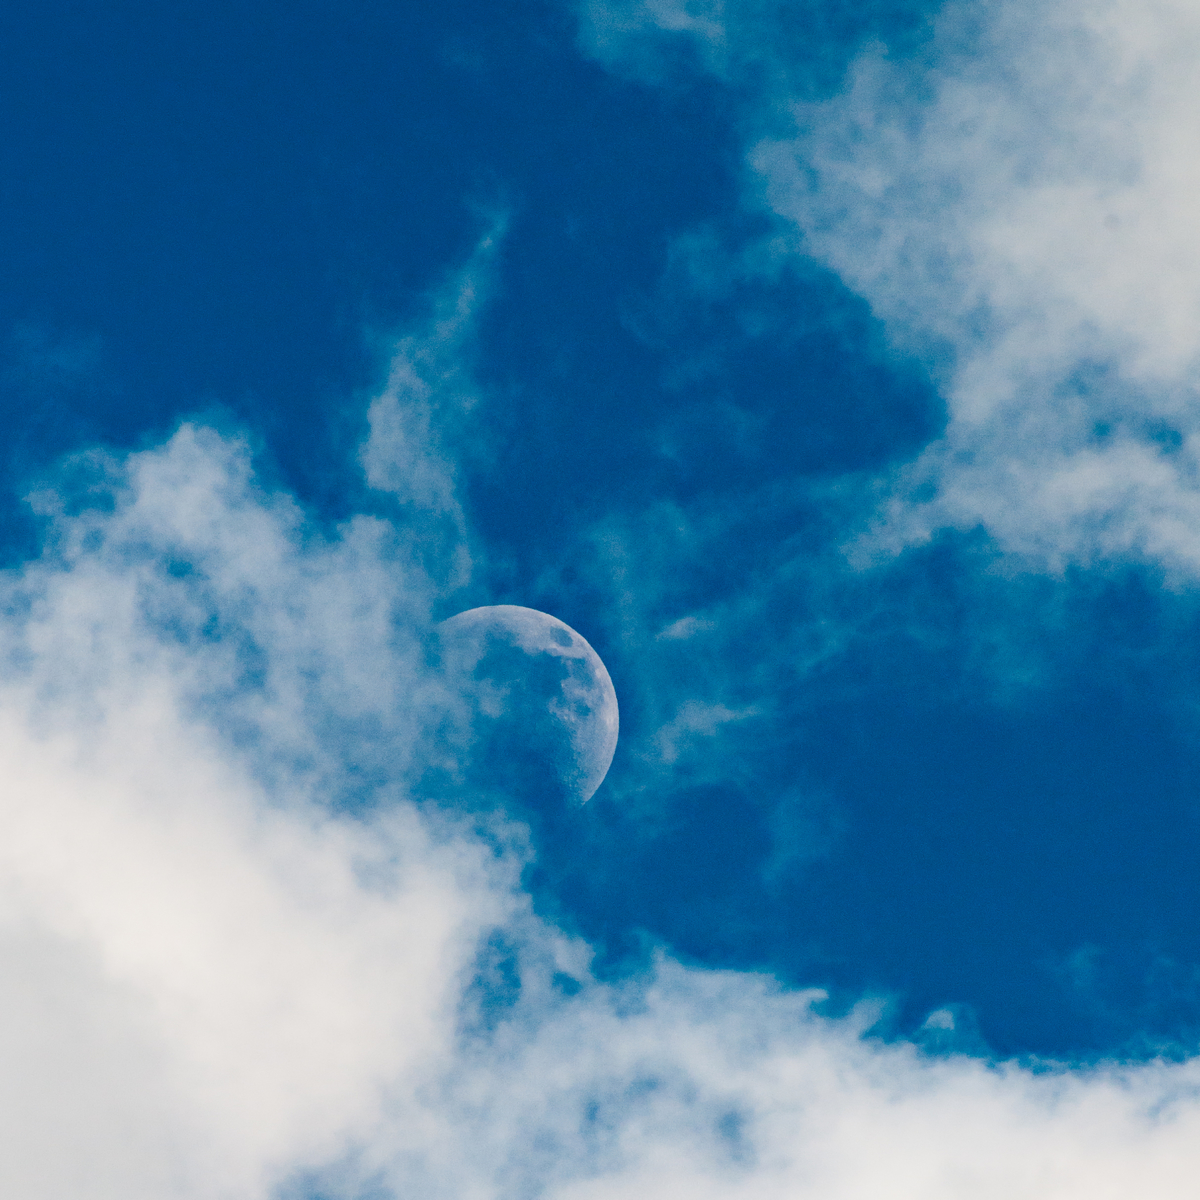 Solar System - Moon Through the Clouds.jpg